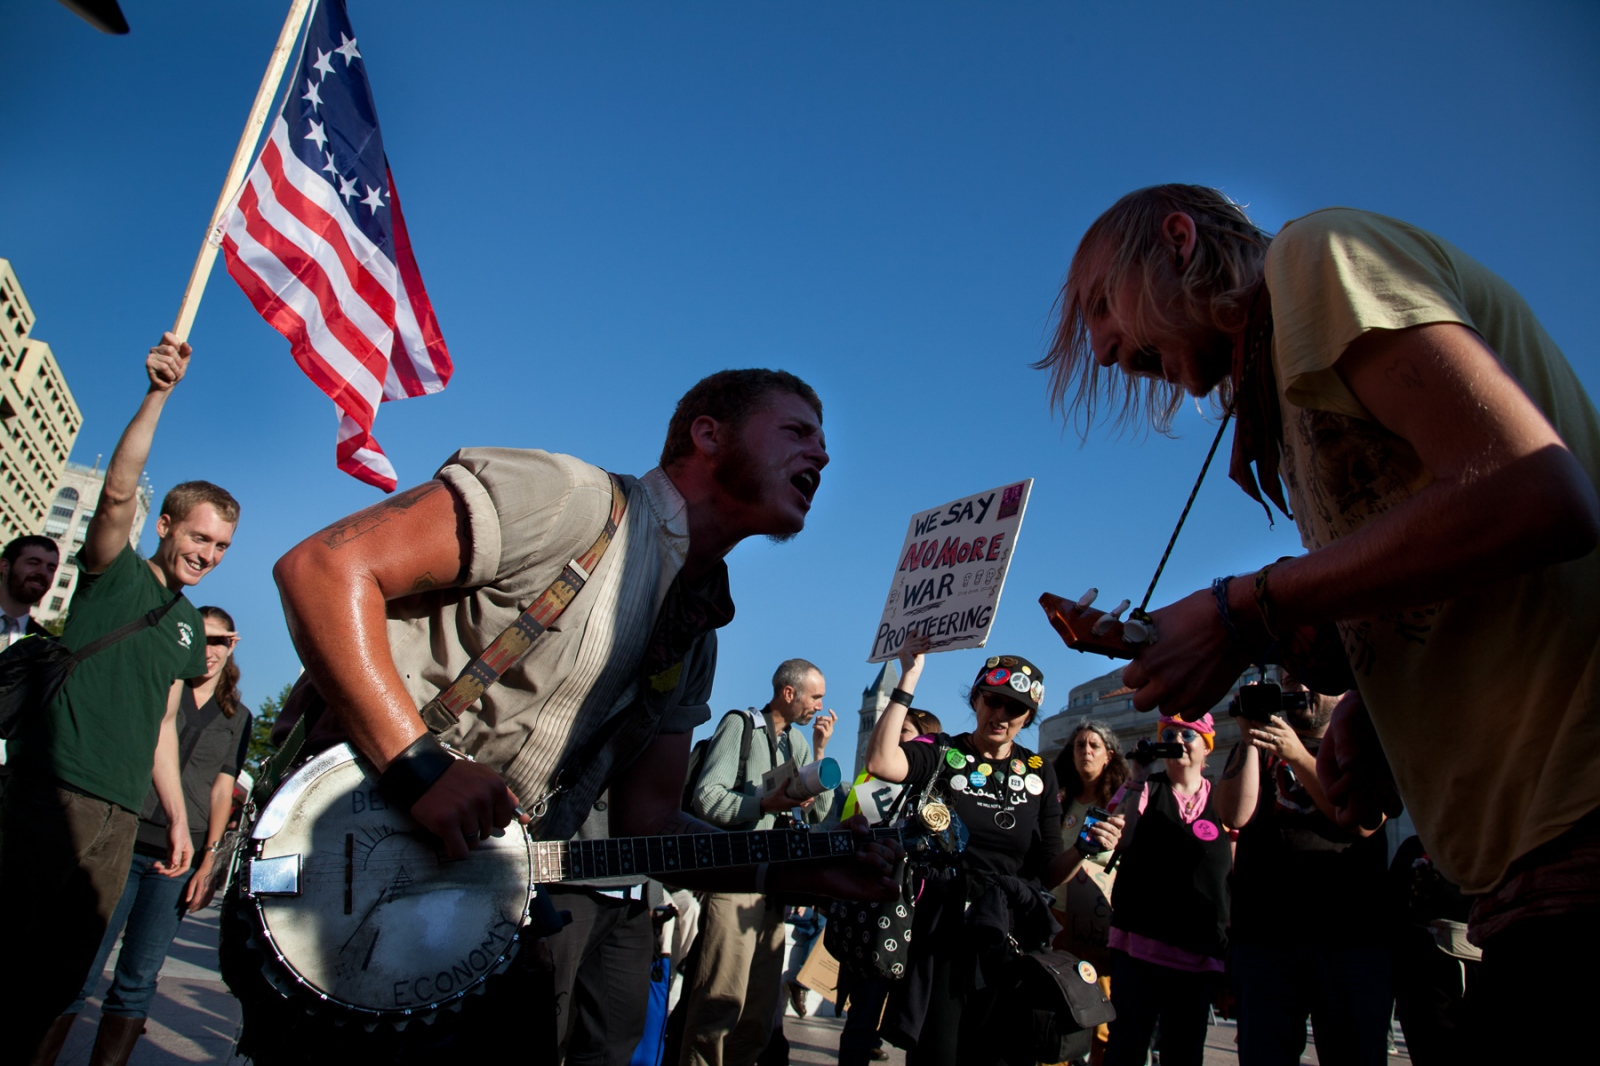 """Banjo Youngblood (left) and Jamie Troutman (right) sang the lyrics, """"the revolution has just begun,"""" to a boisterous crowd on Freedom Square during the first day of """"Occupy DC."""""""